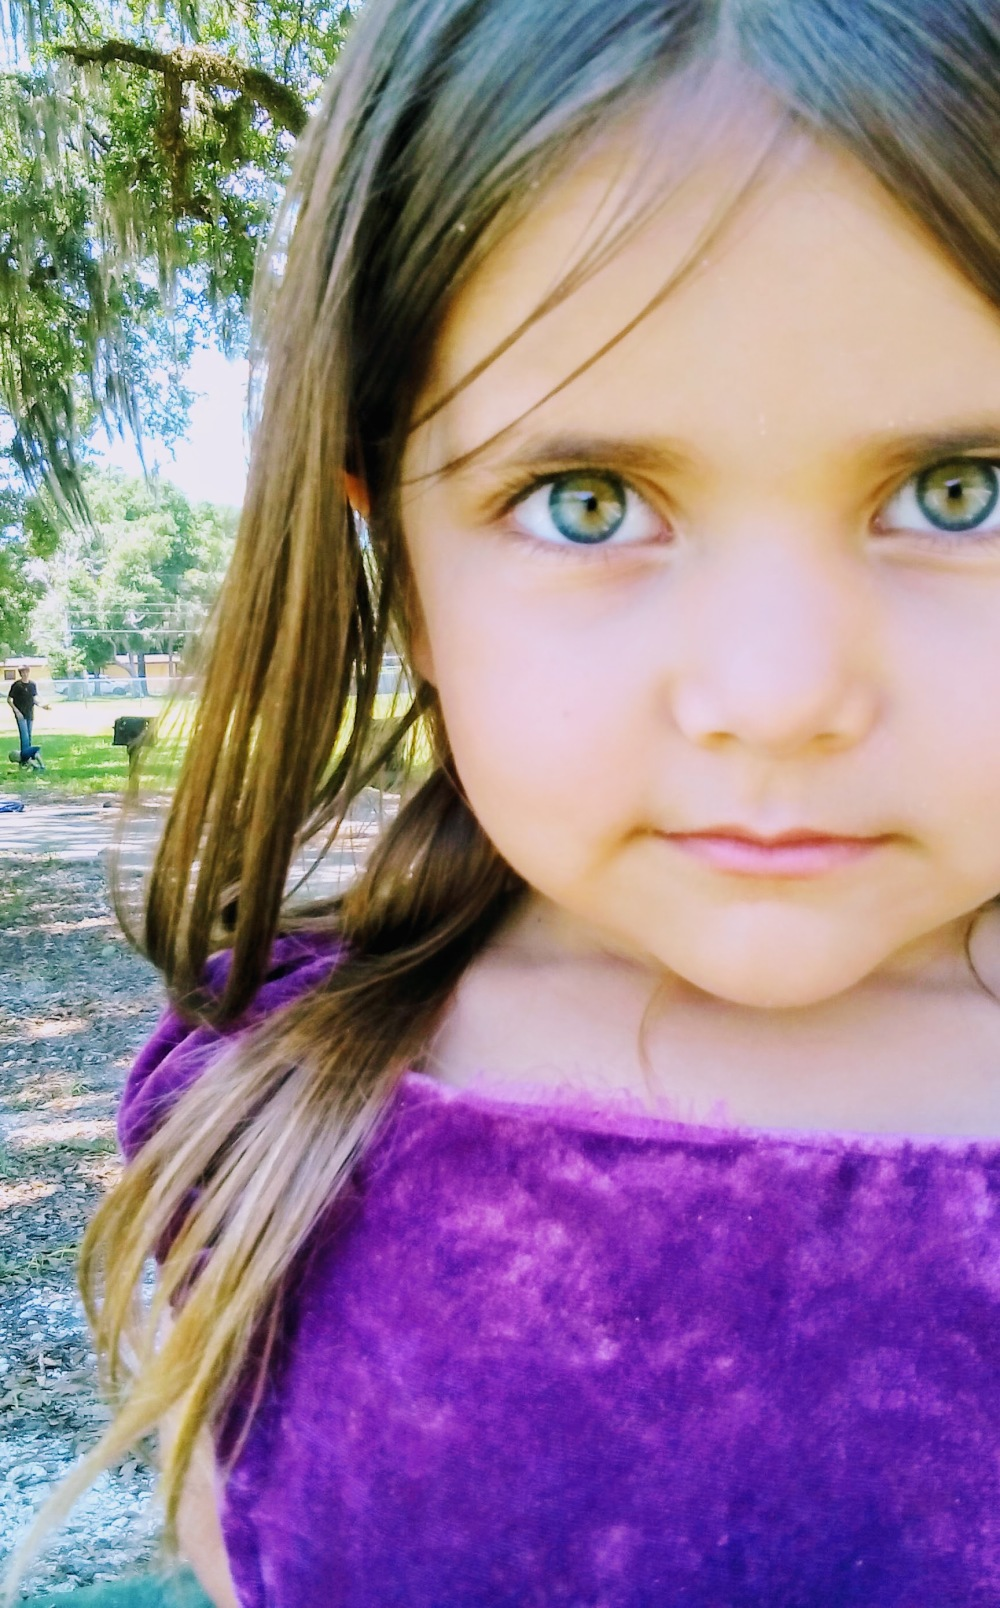 girl with amazing green eyes in purple dress